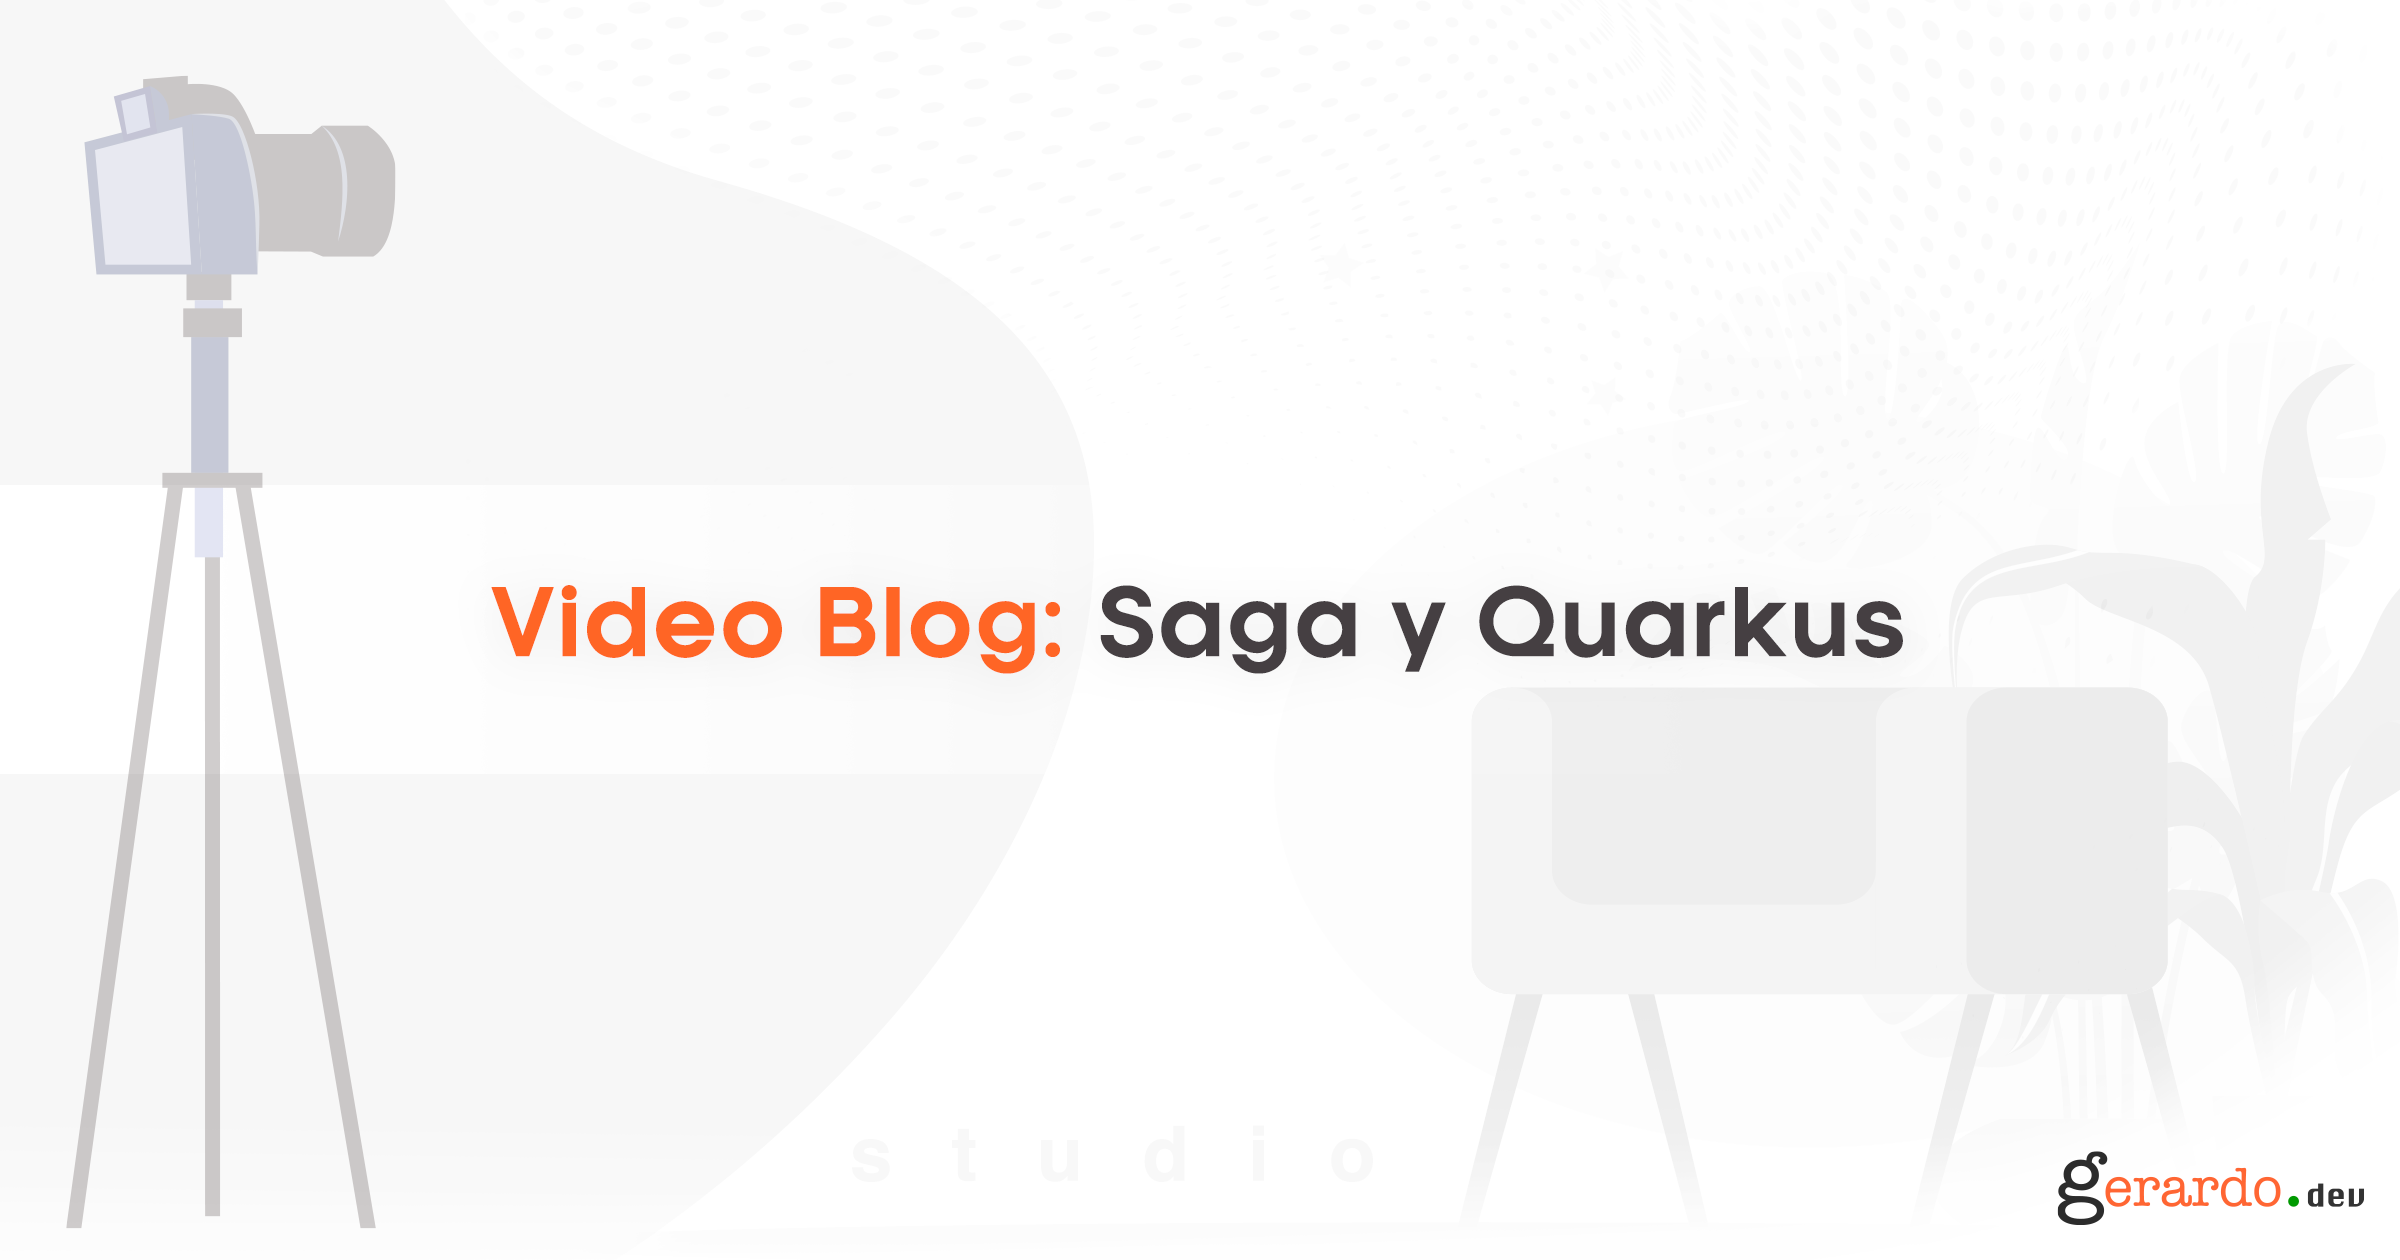 Video Blog: Saga y Quakus